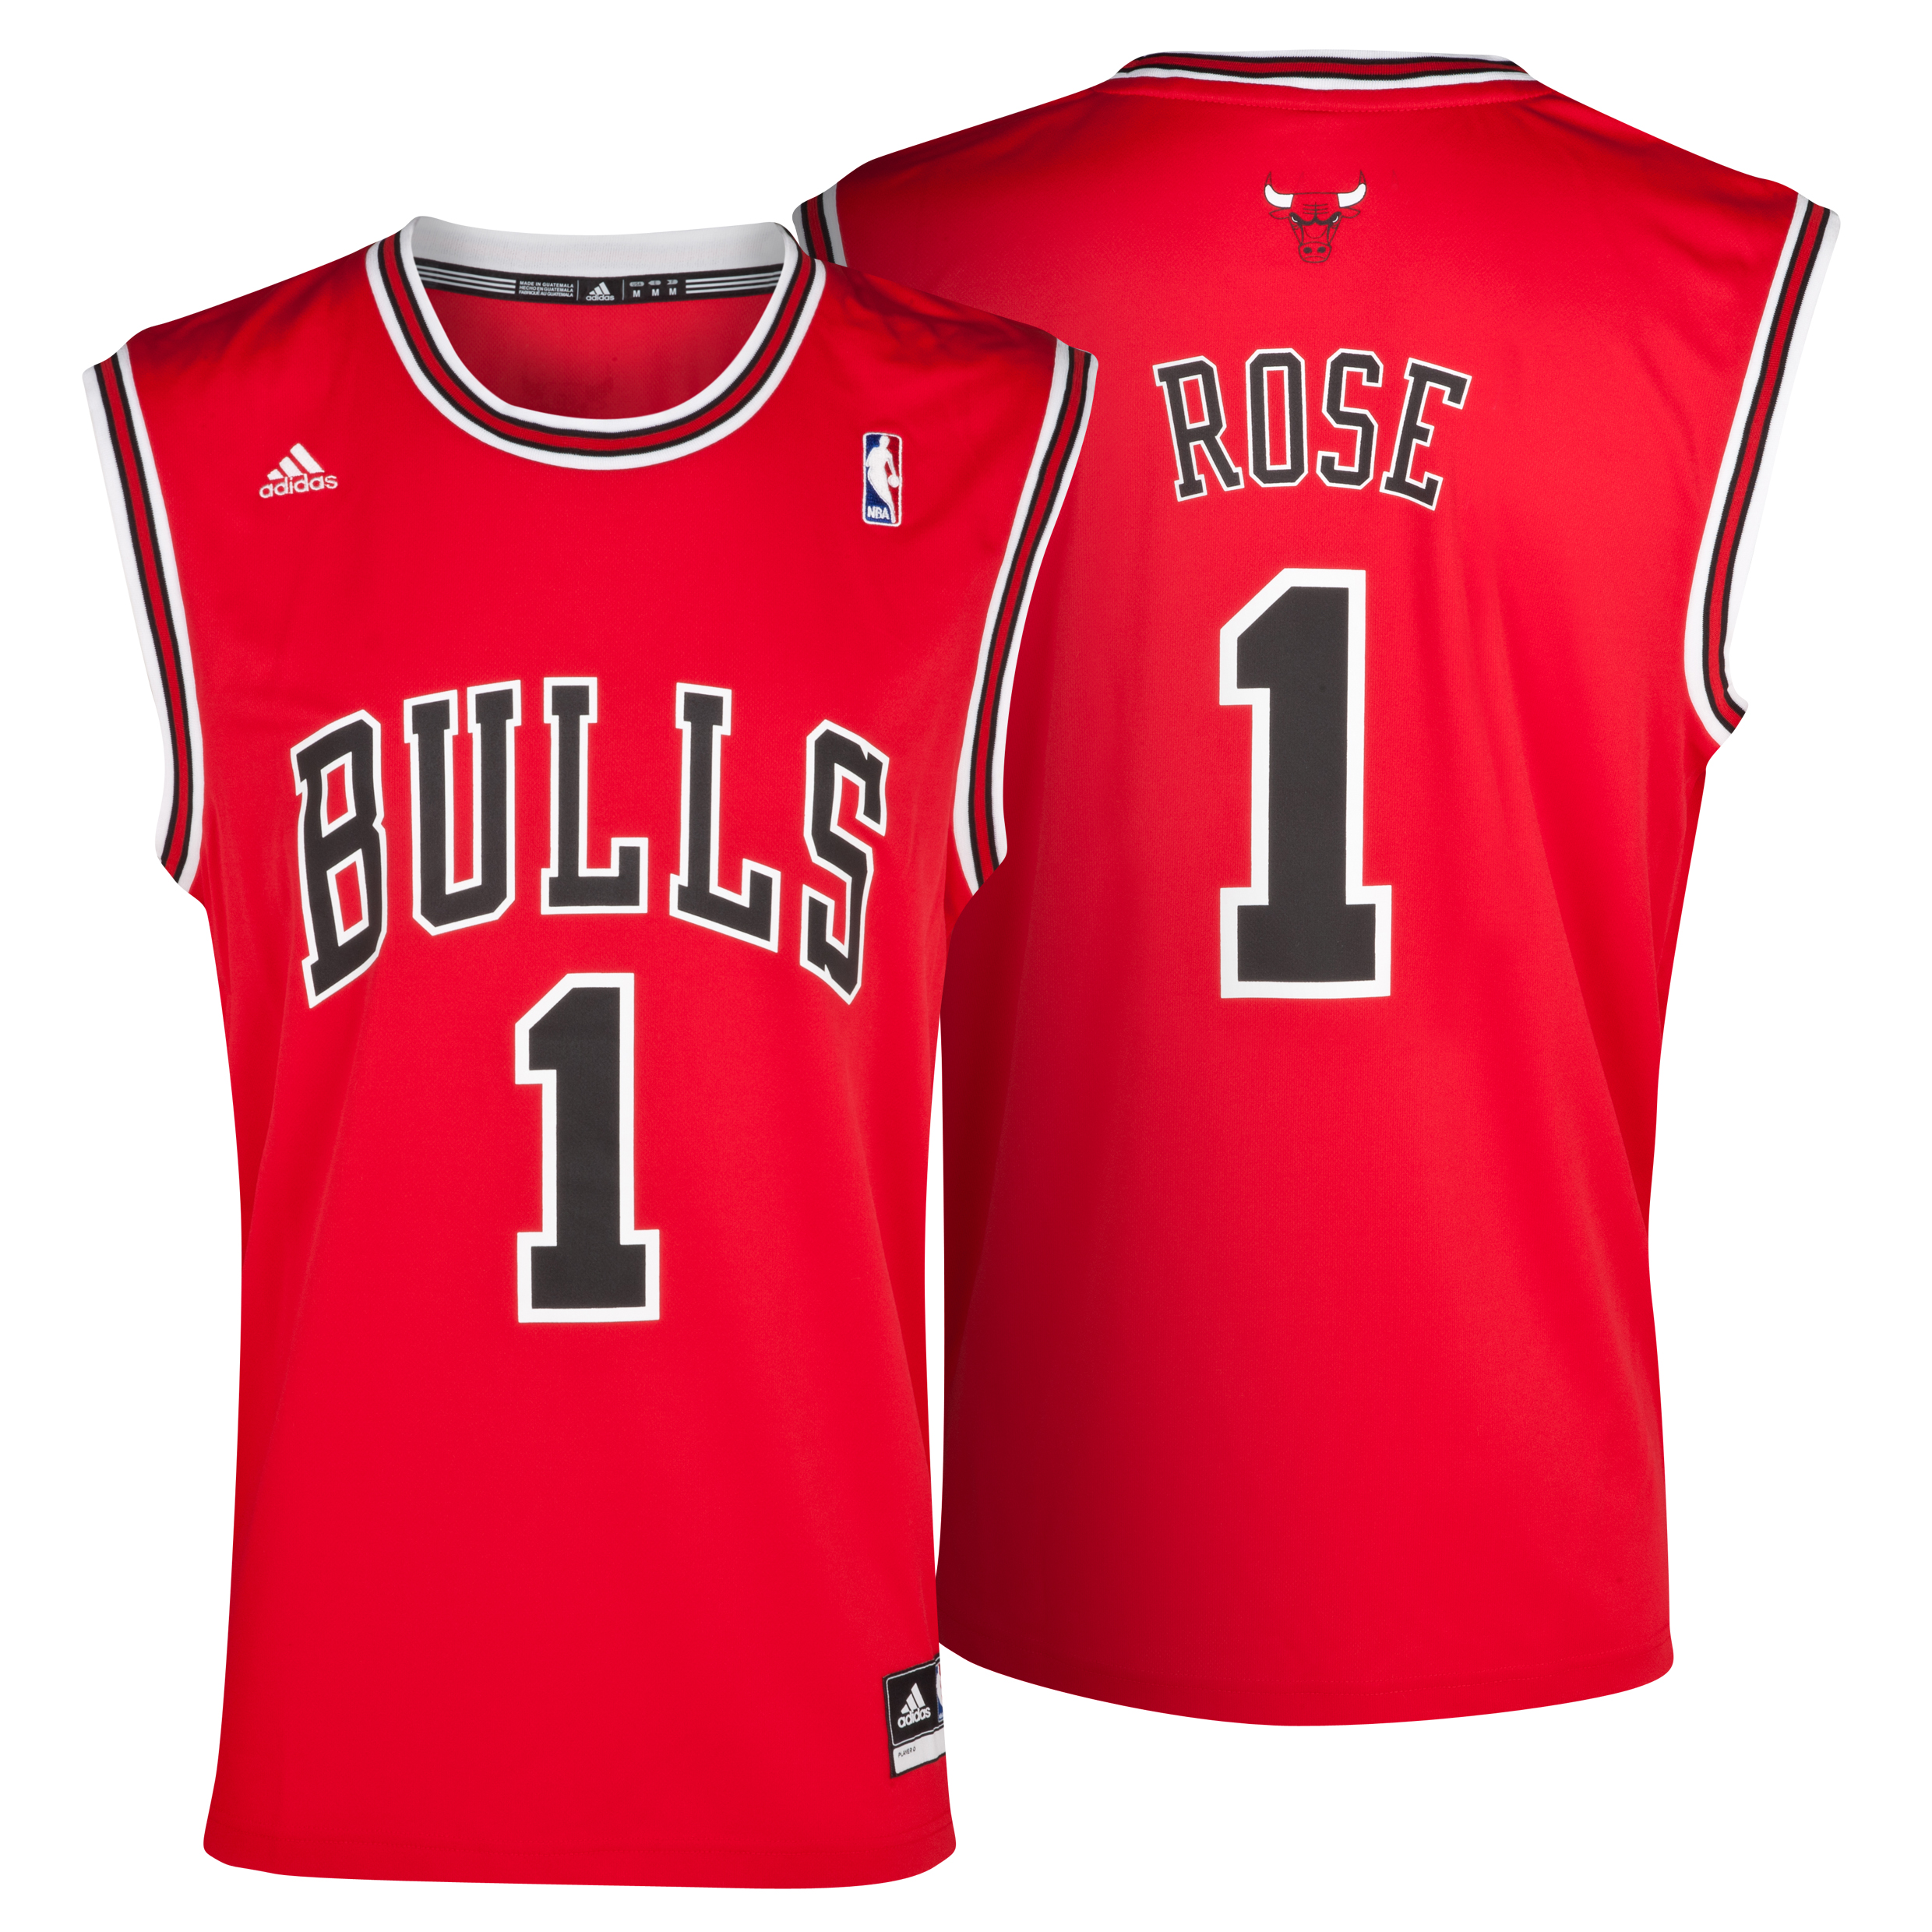 Chicago Bulls Road Replica Jersey - Derrick Rose - Mens